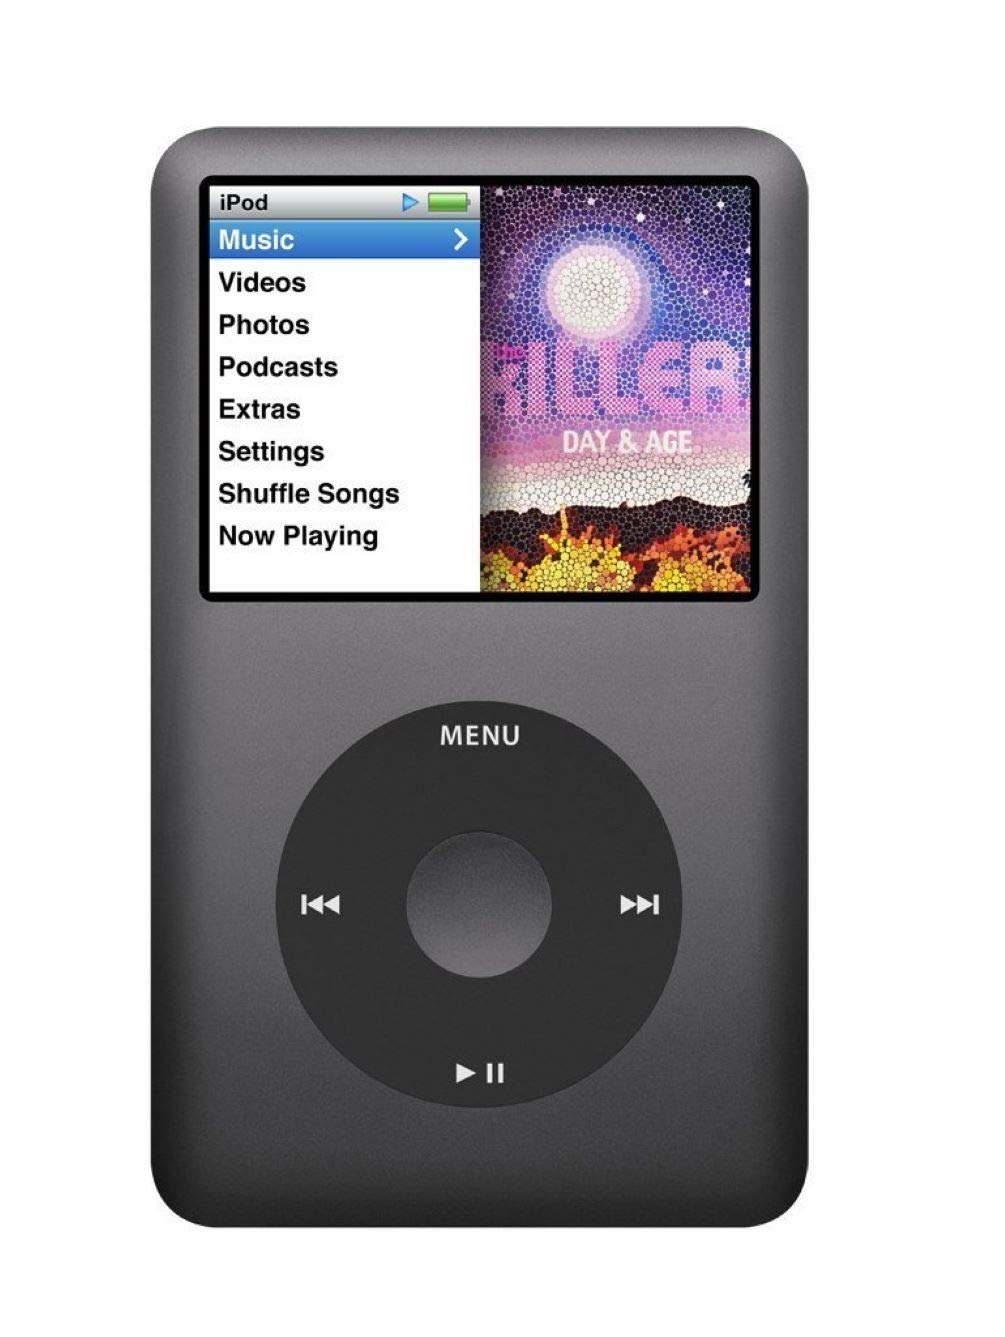 Music Player iPod Classic 7th Generation 160gb Black Packaged in Plain White Box